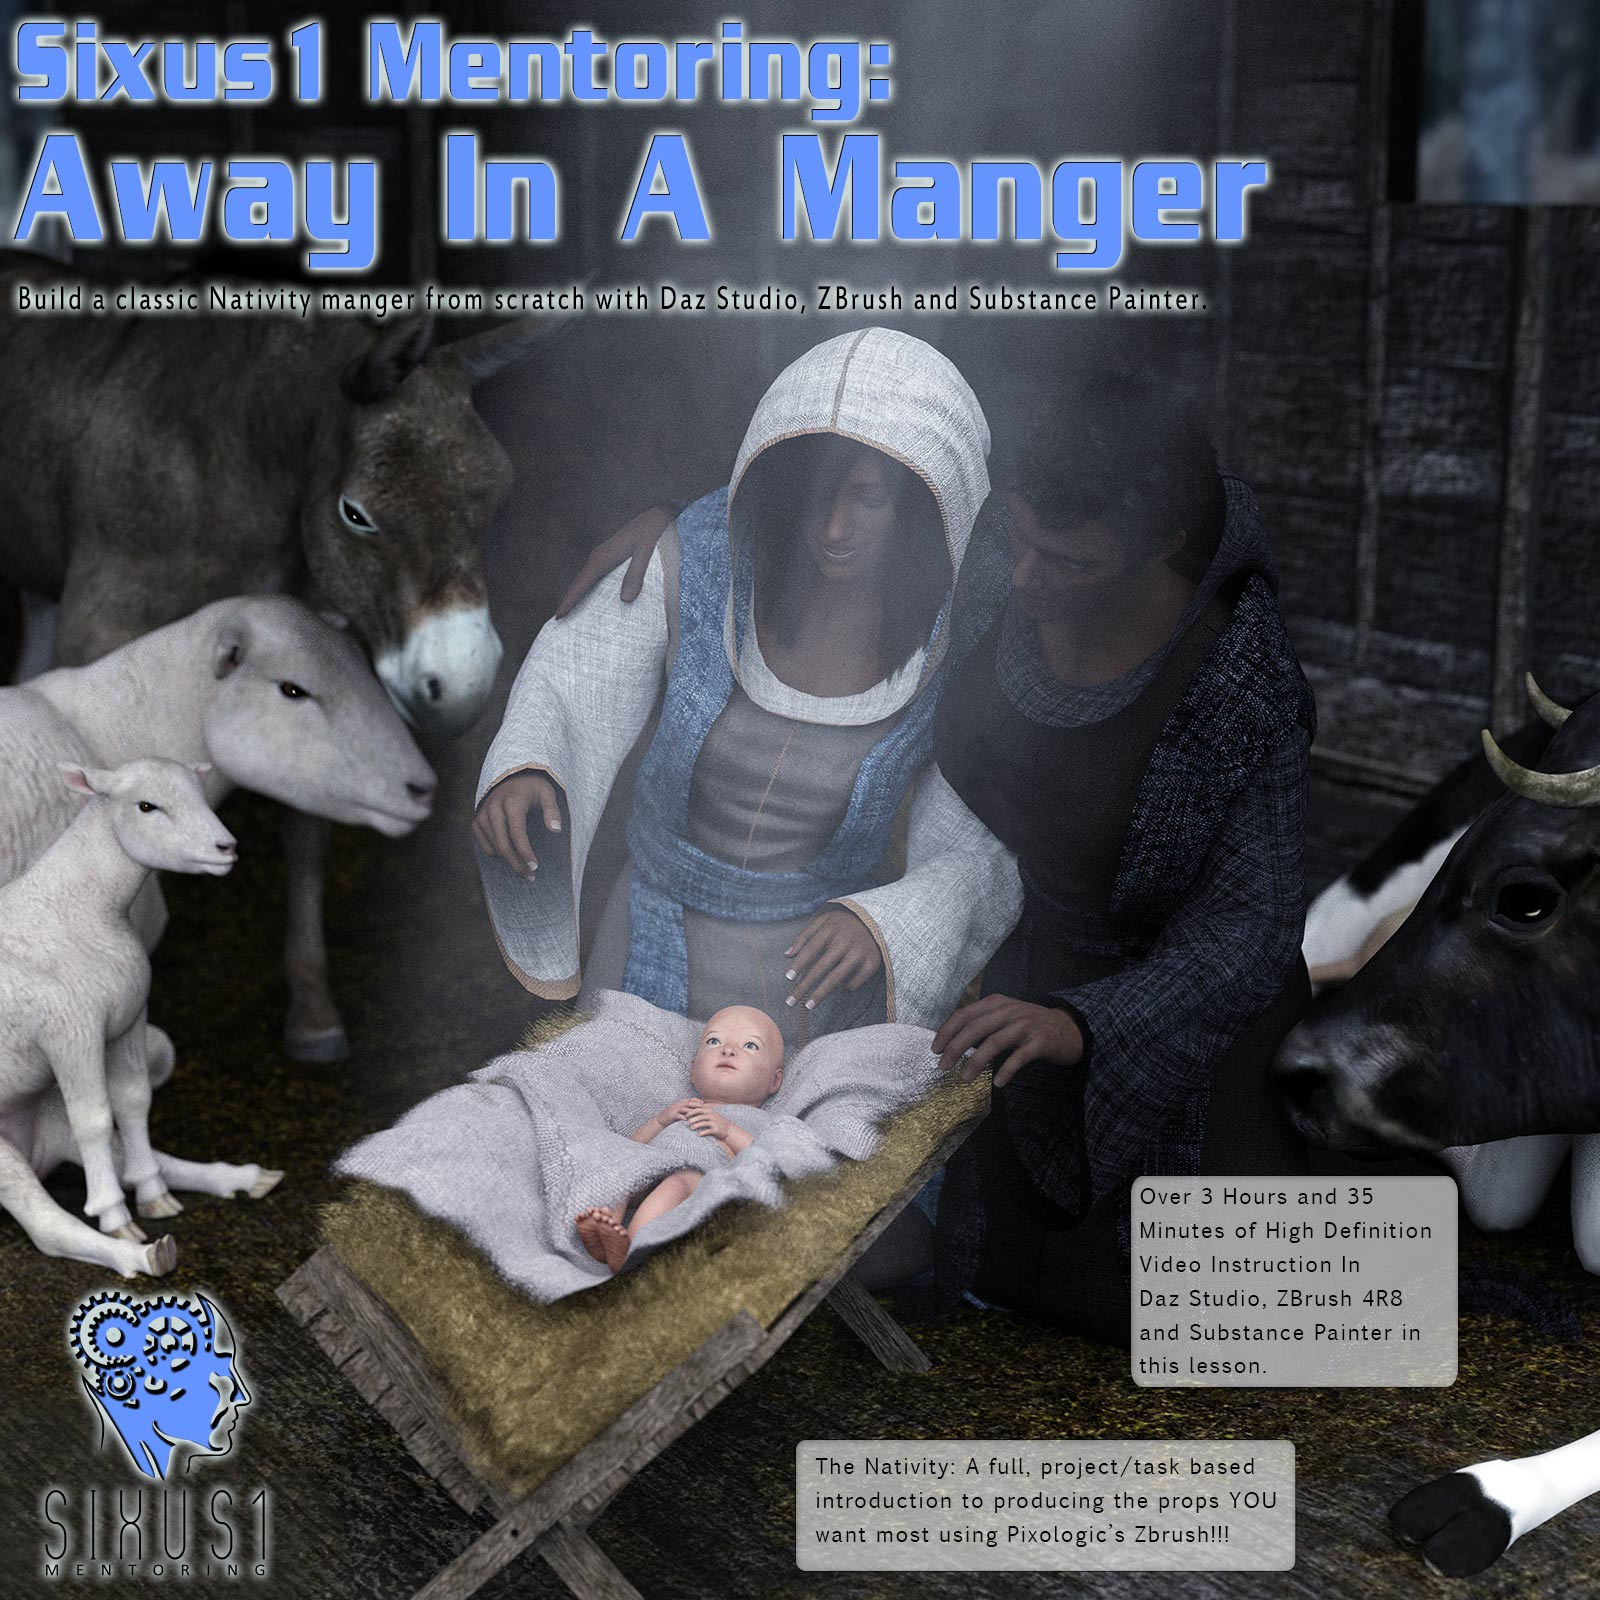 Sixus1 Mentoring: Away In A Manger